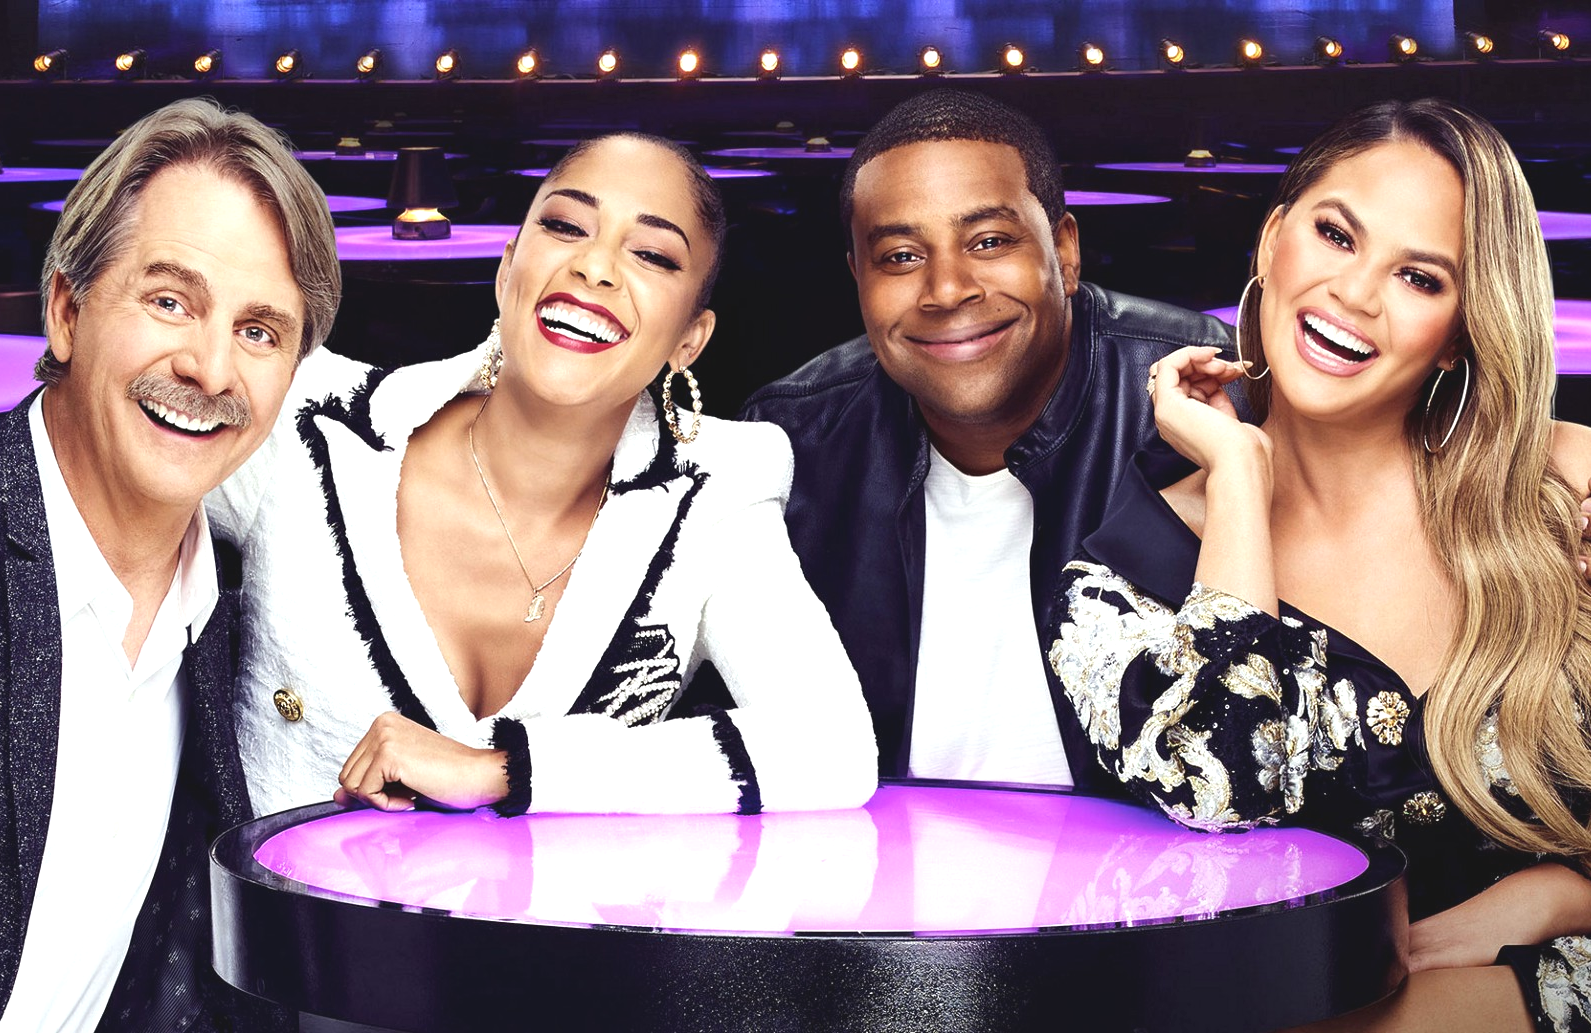 Jeff Foxworthy, Amanda Seales, Kenan Thompson and Chrissy Tiegen in Bring the Funny (Photo: NBC)